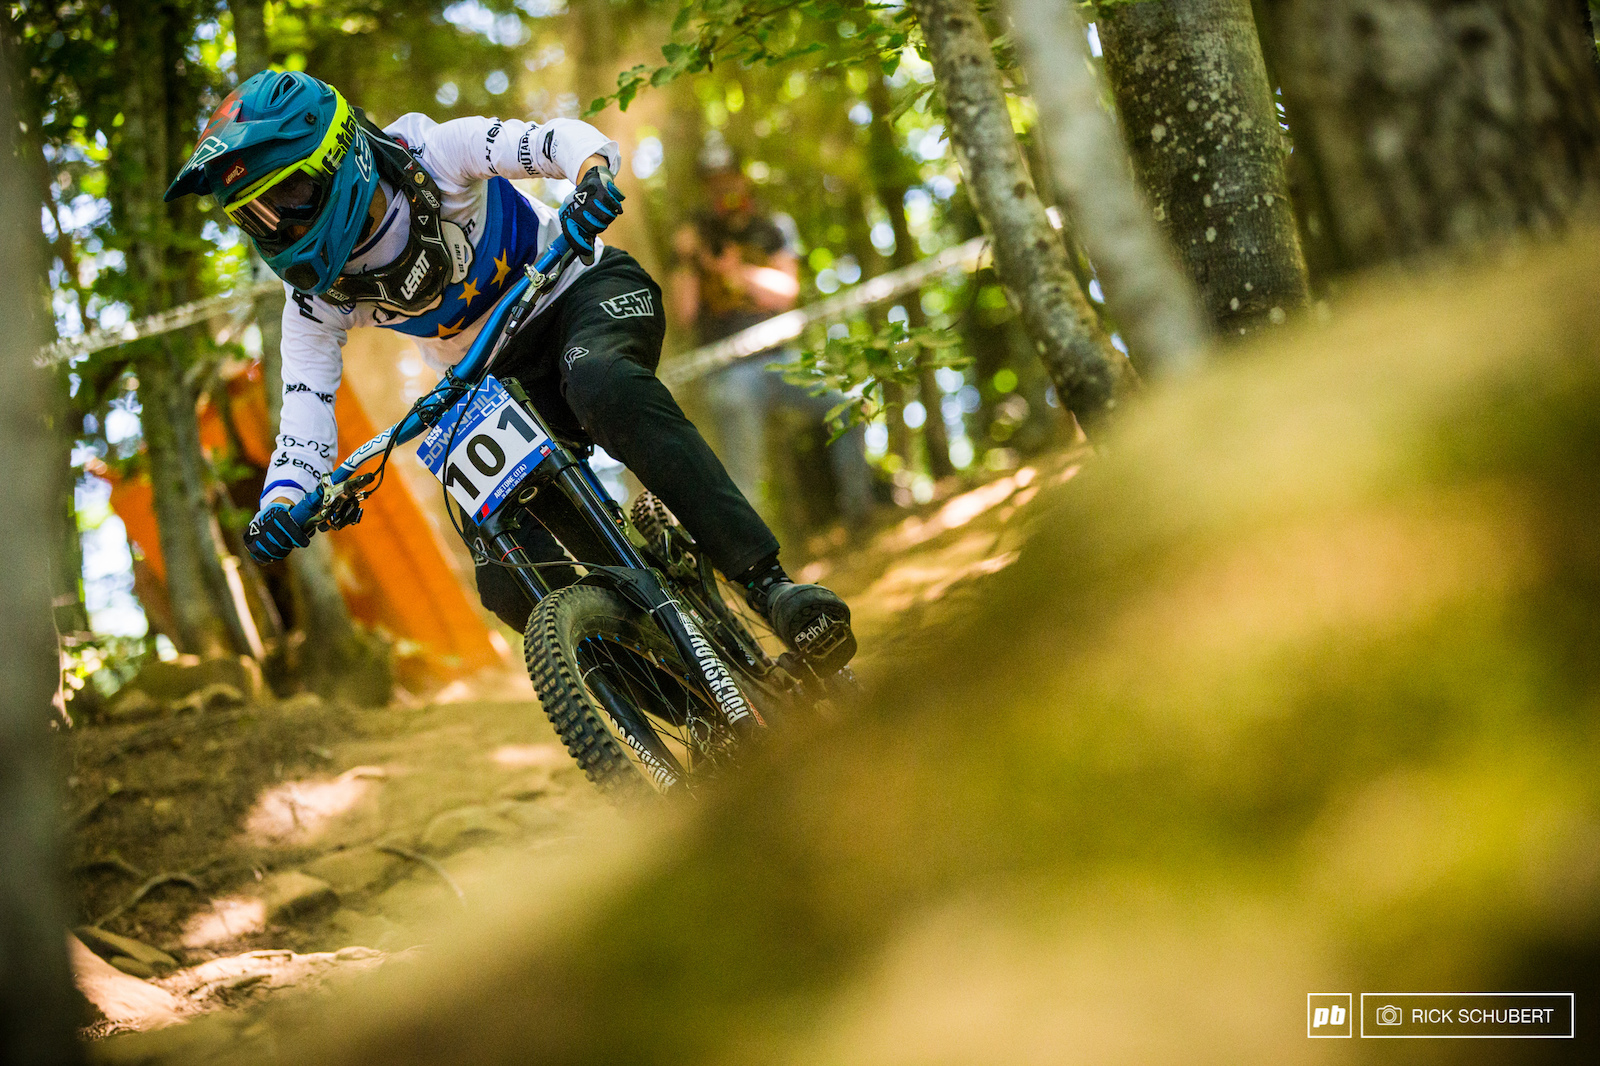 Mona Hrastnik just once again showed her great level of riding and took another win